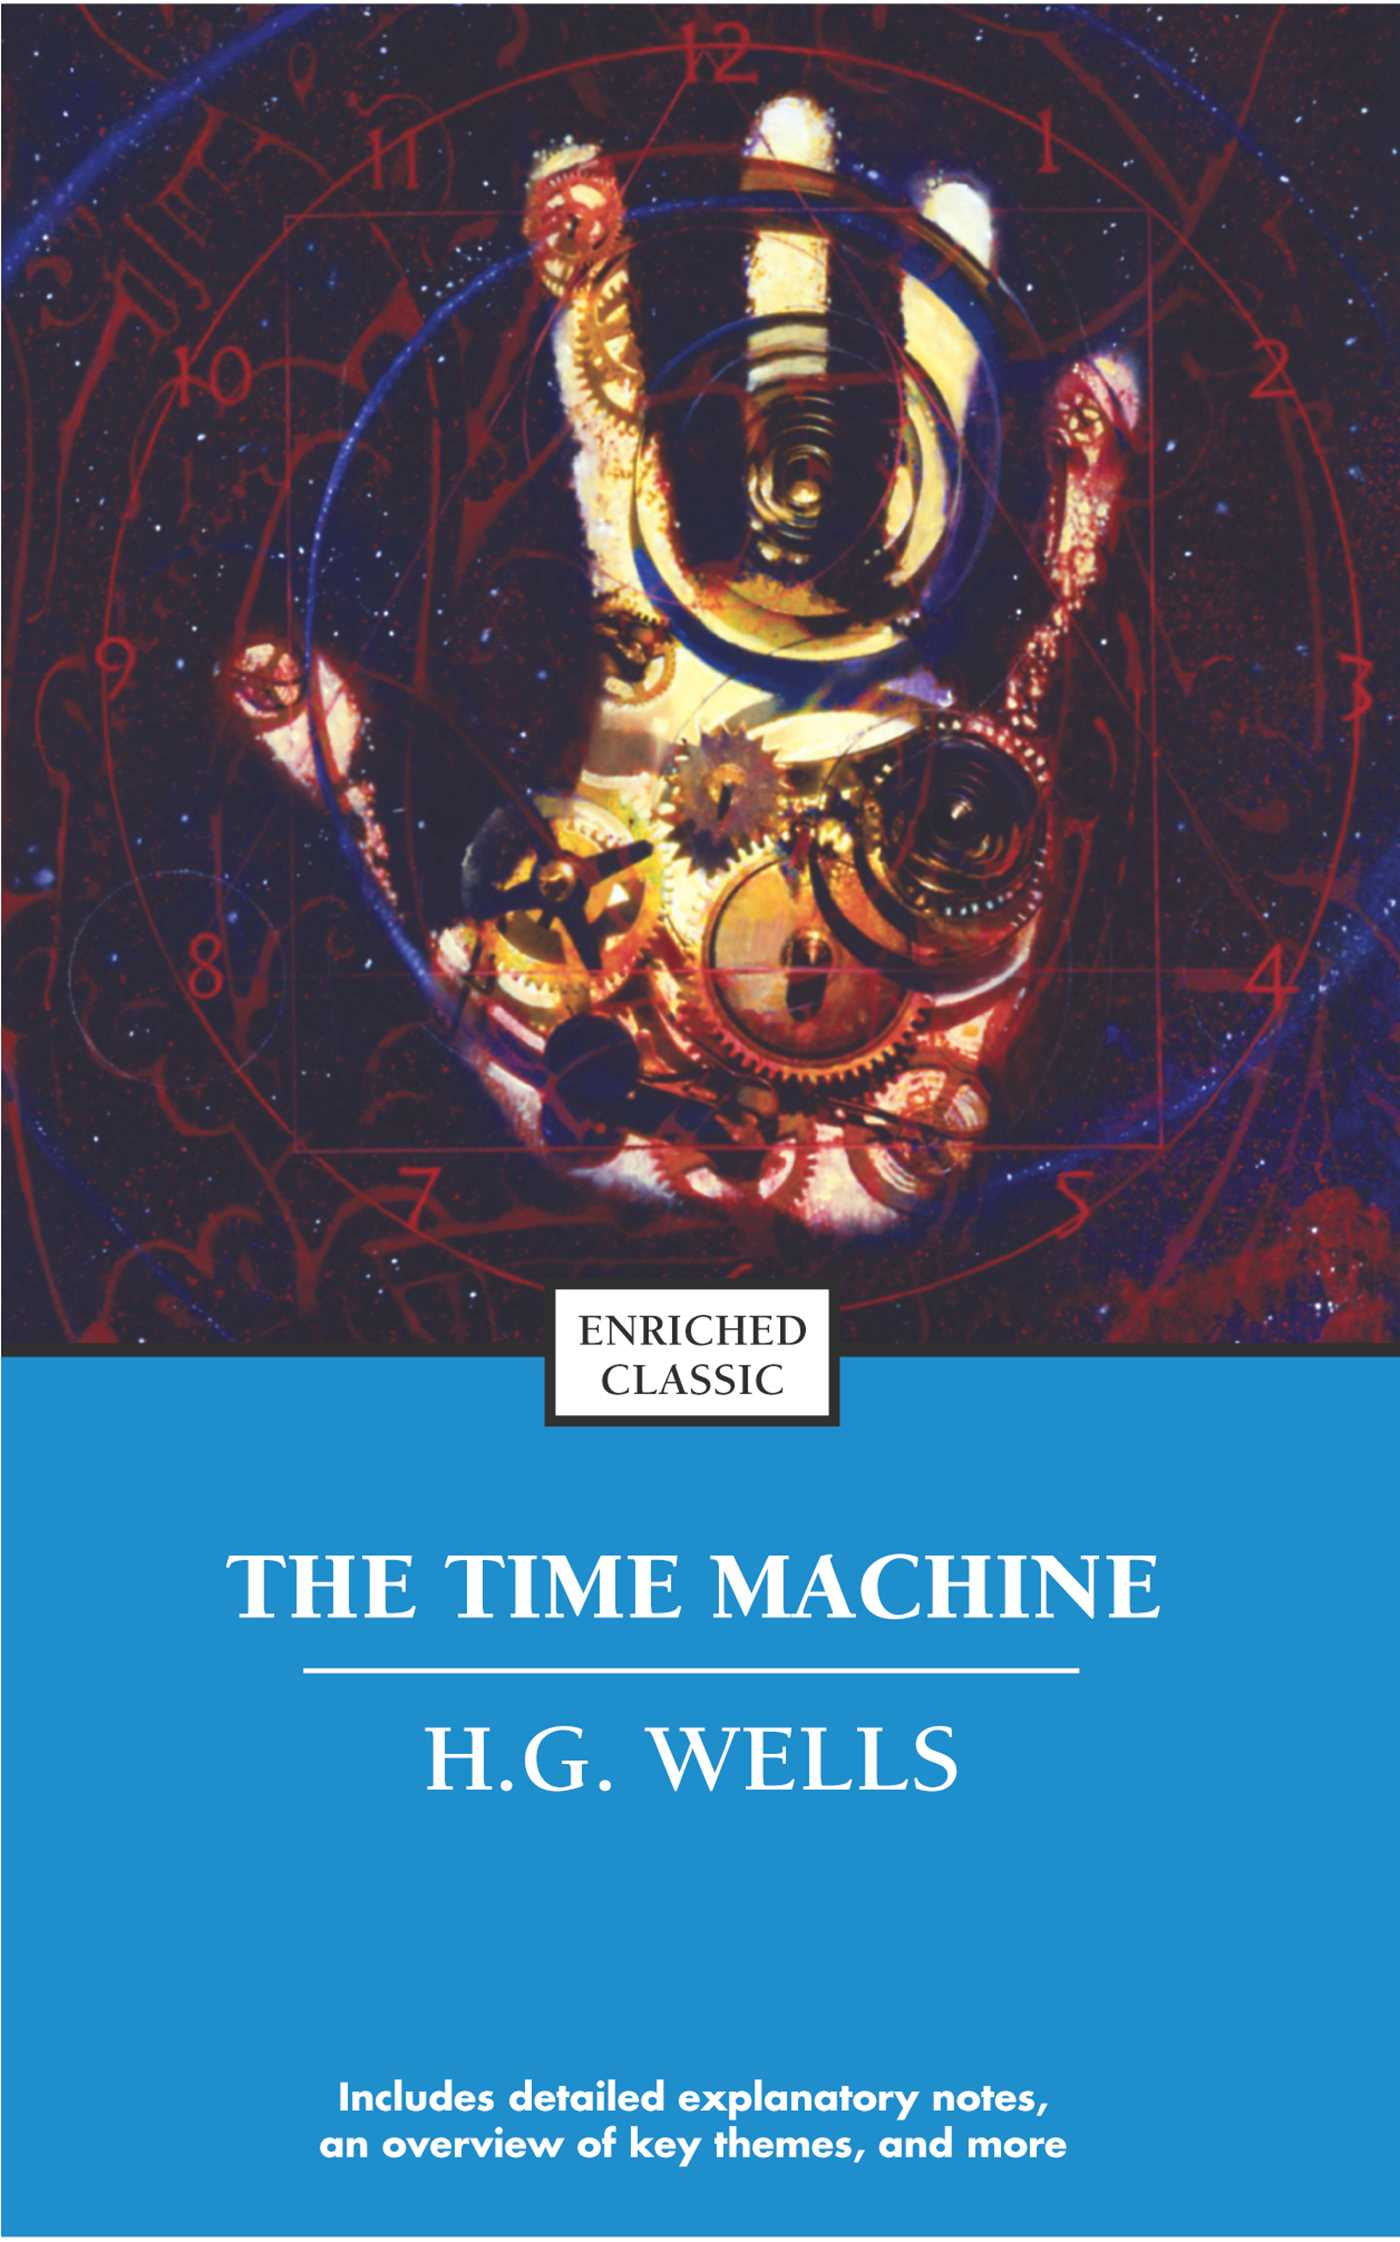 an analysis of h g wellss novel the time machine Summary chapter 1 having his guests gathered at his house for their weekly thursday dinner, the time traveler begins to expound on his theory with regard time which will redefine the notion of time and space as they know it.